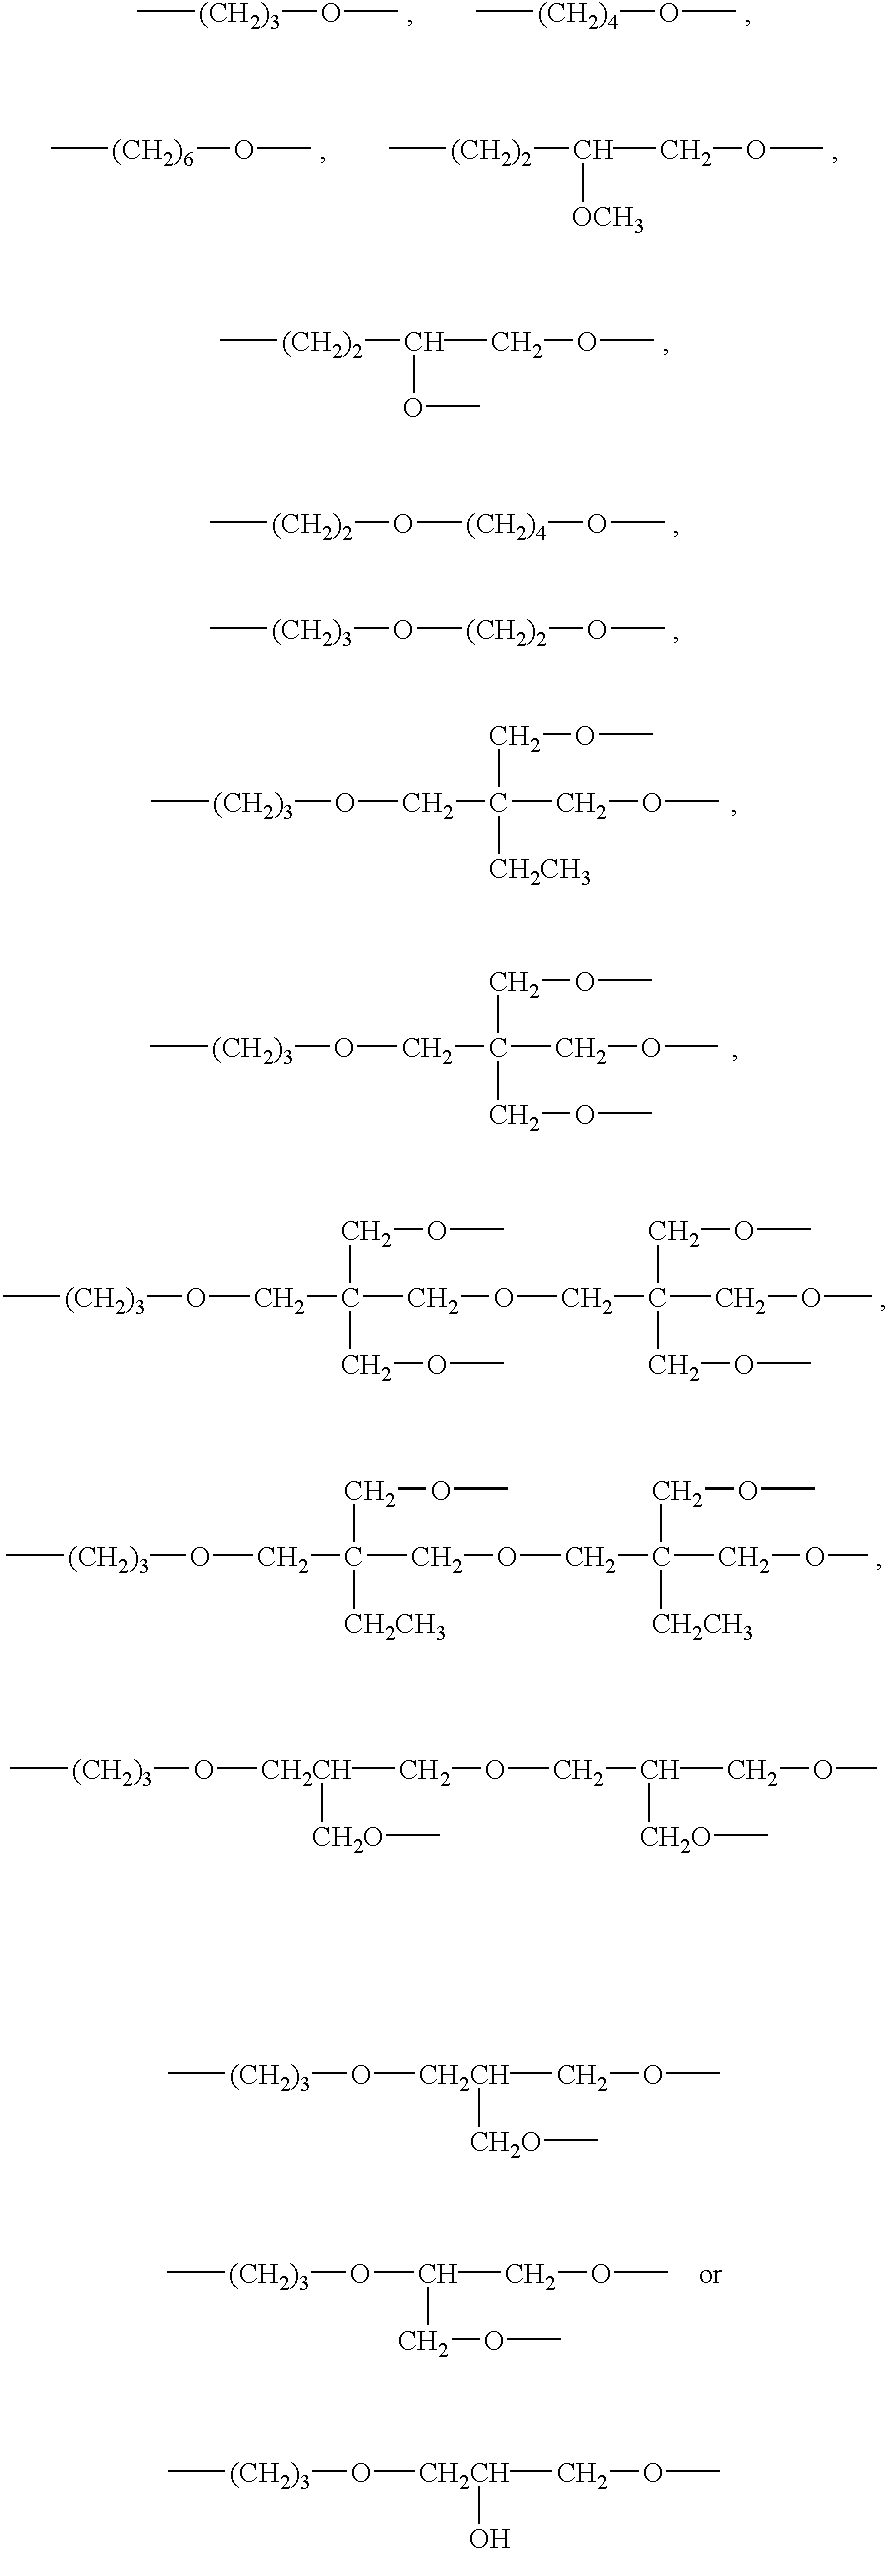 US20030064232A1 - Siloxane-containing compositions curable by